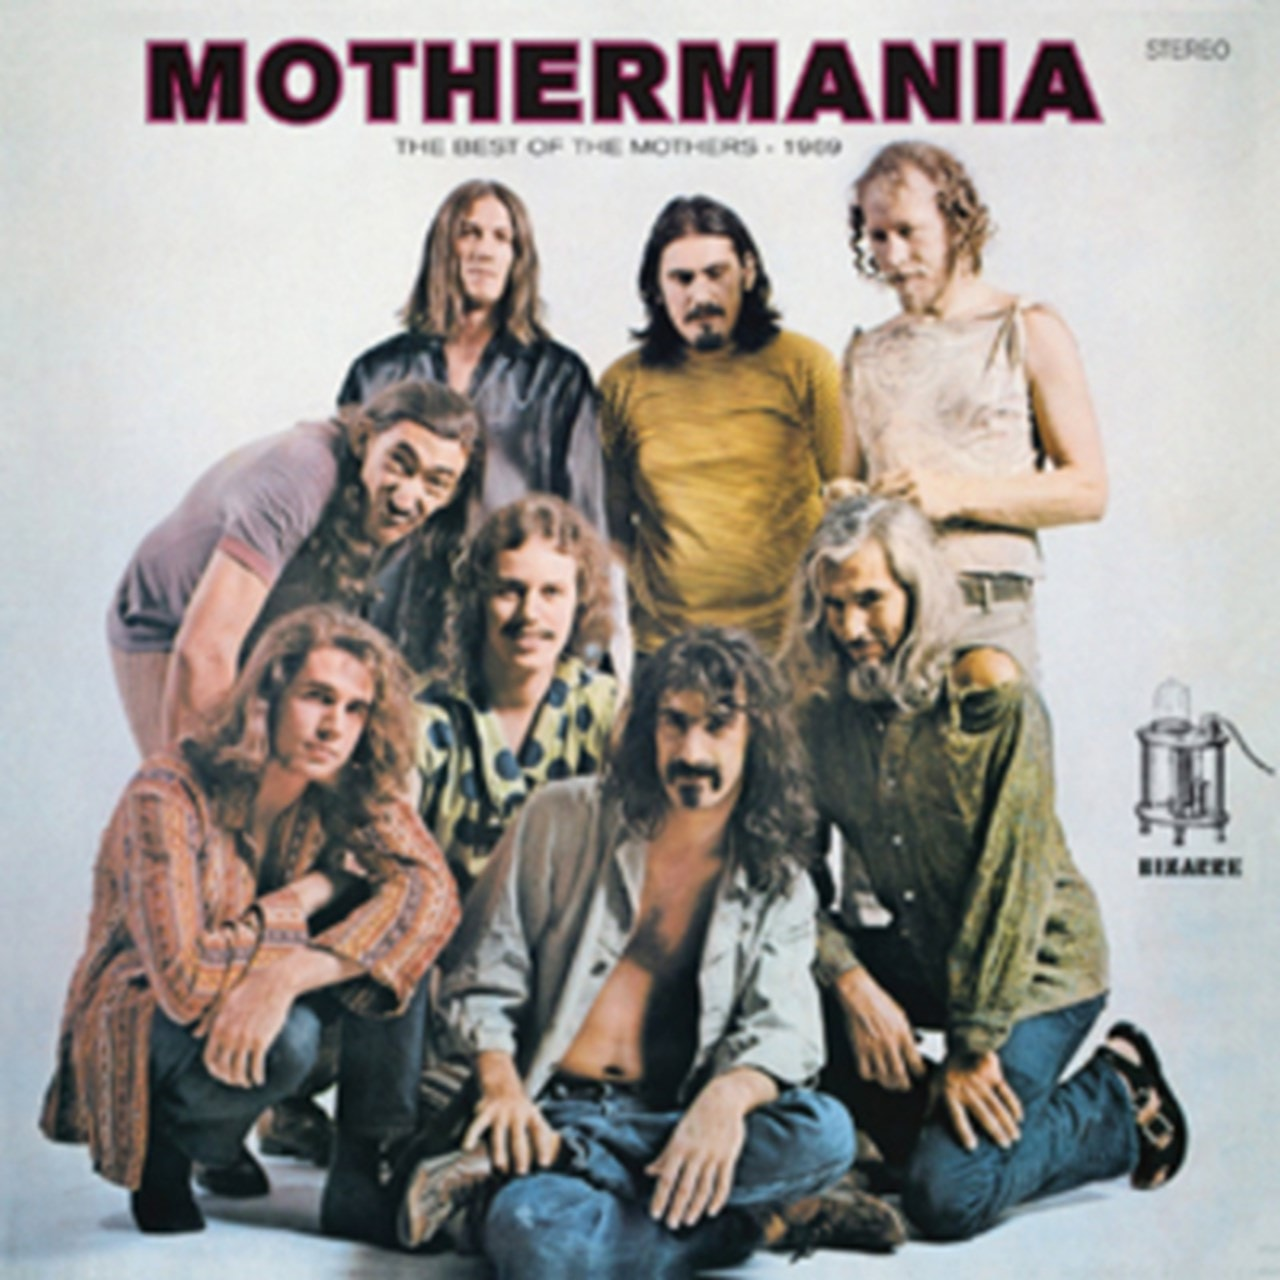 Mothermania: The Best of the Mothers - 1